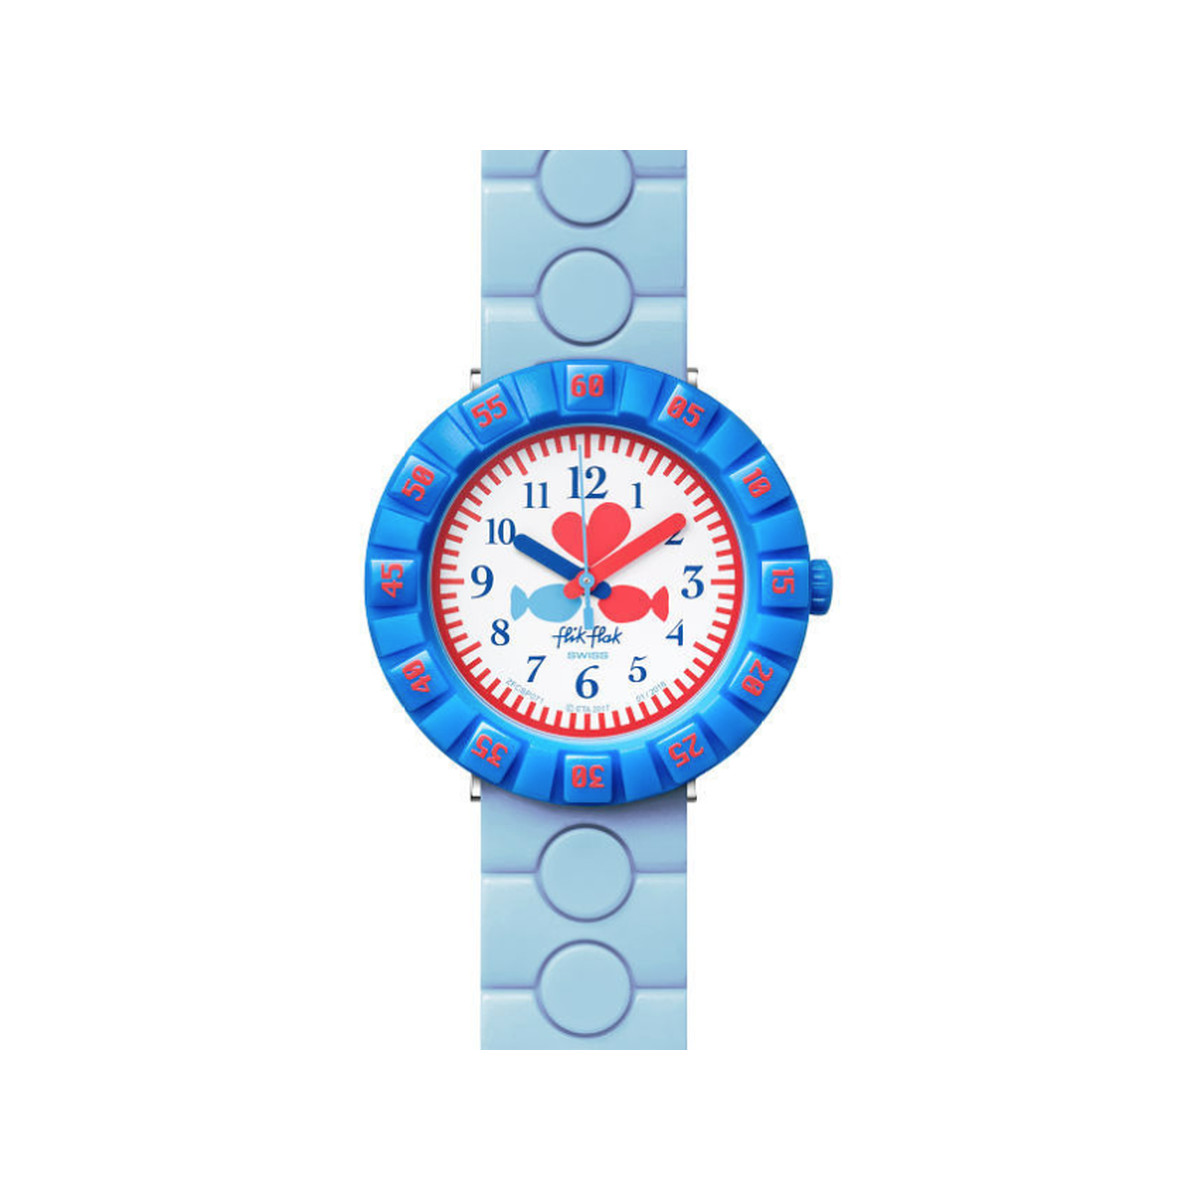 Montre Flik Flak Fish in love enfant plastique - vue 1